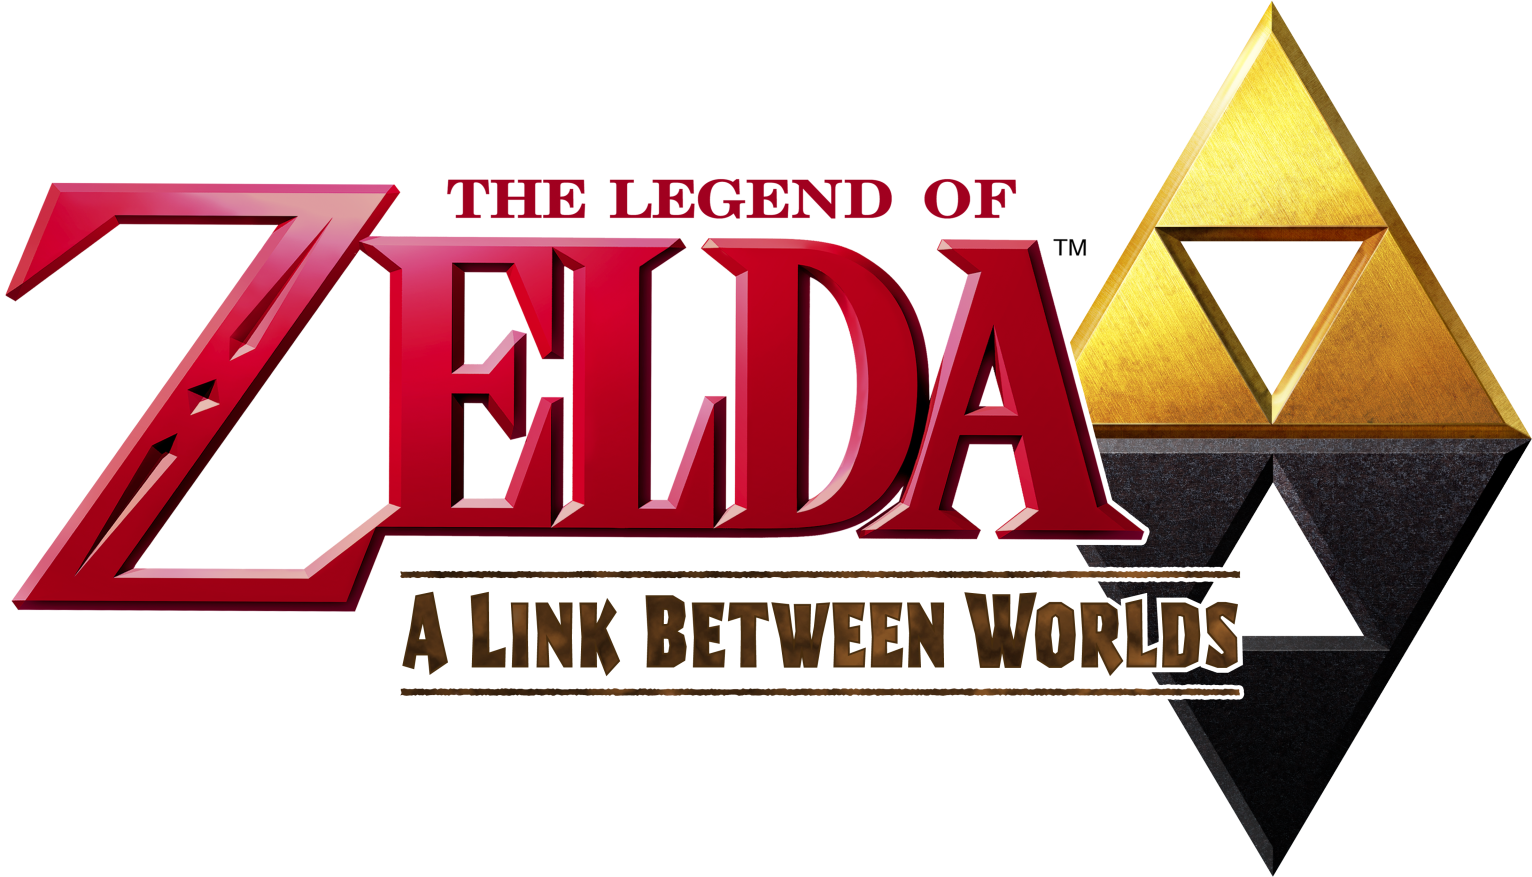 Zelda logo png. Image the legend of